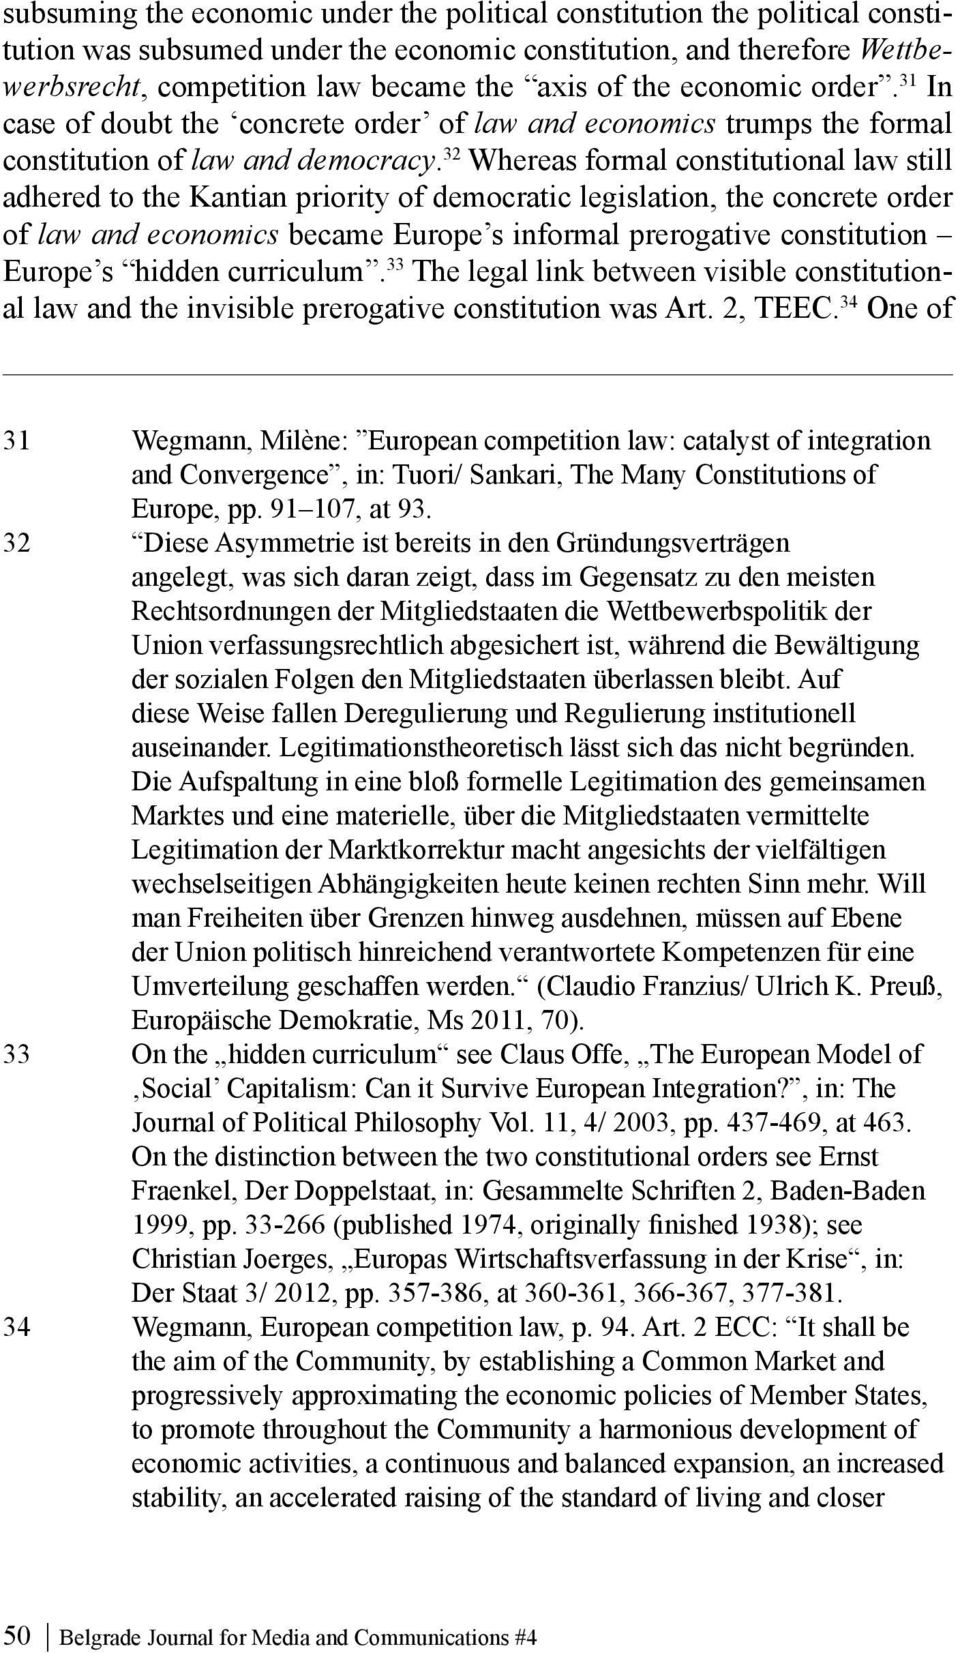 32 Whereas formal constitutional law still adhered to the Kantian priority of democratic legislation, the concrete order of law and economics became Europe s informal prerogative constitution Europe